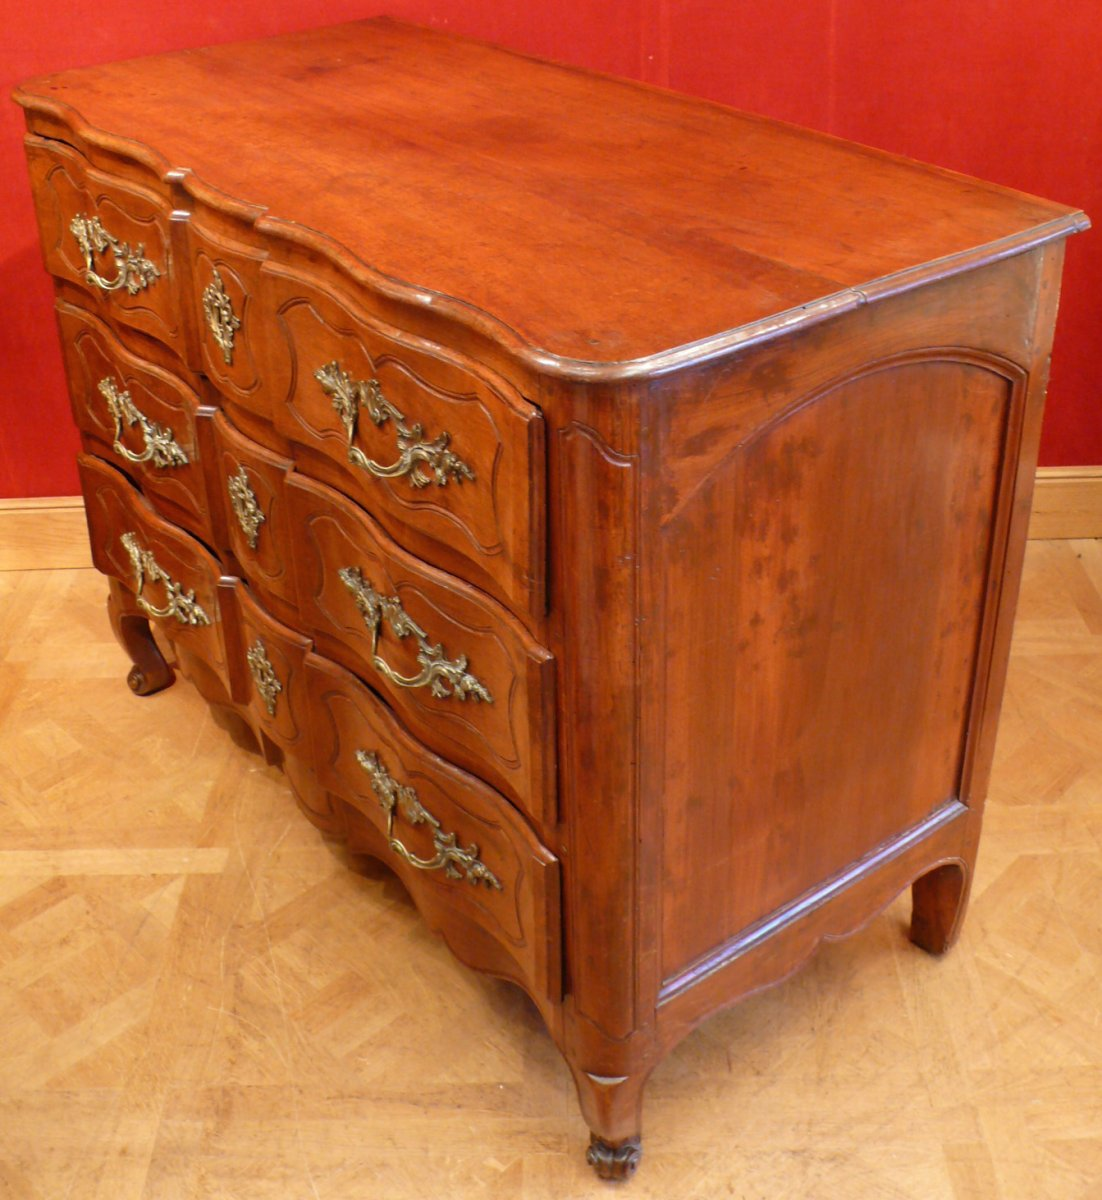 Provencal Arbalette Chest Of Drawers Last XVIIIth Century In Walnut-photo-1